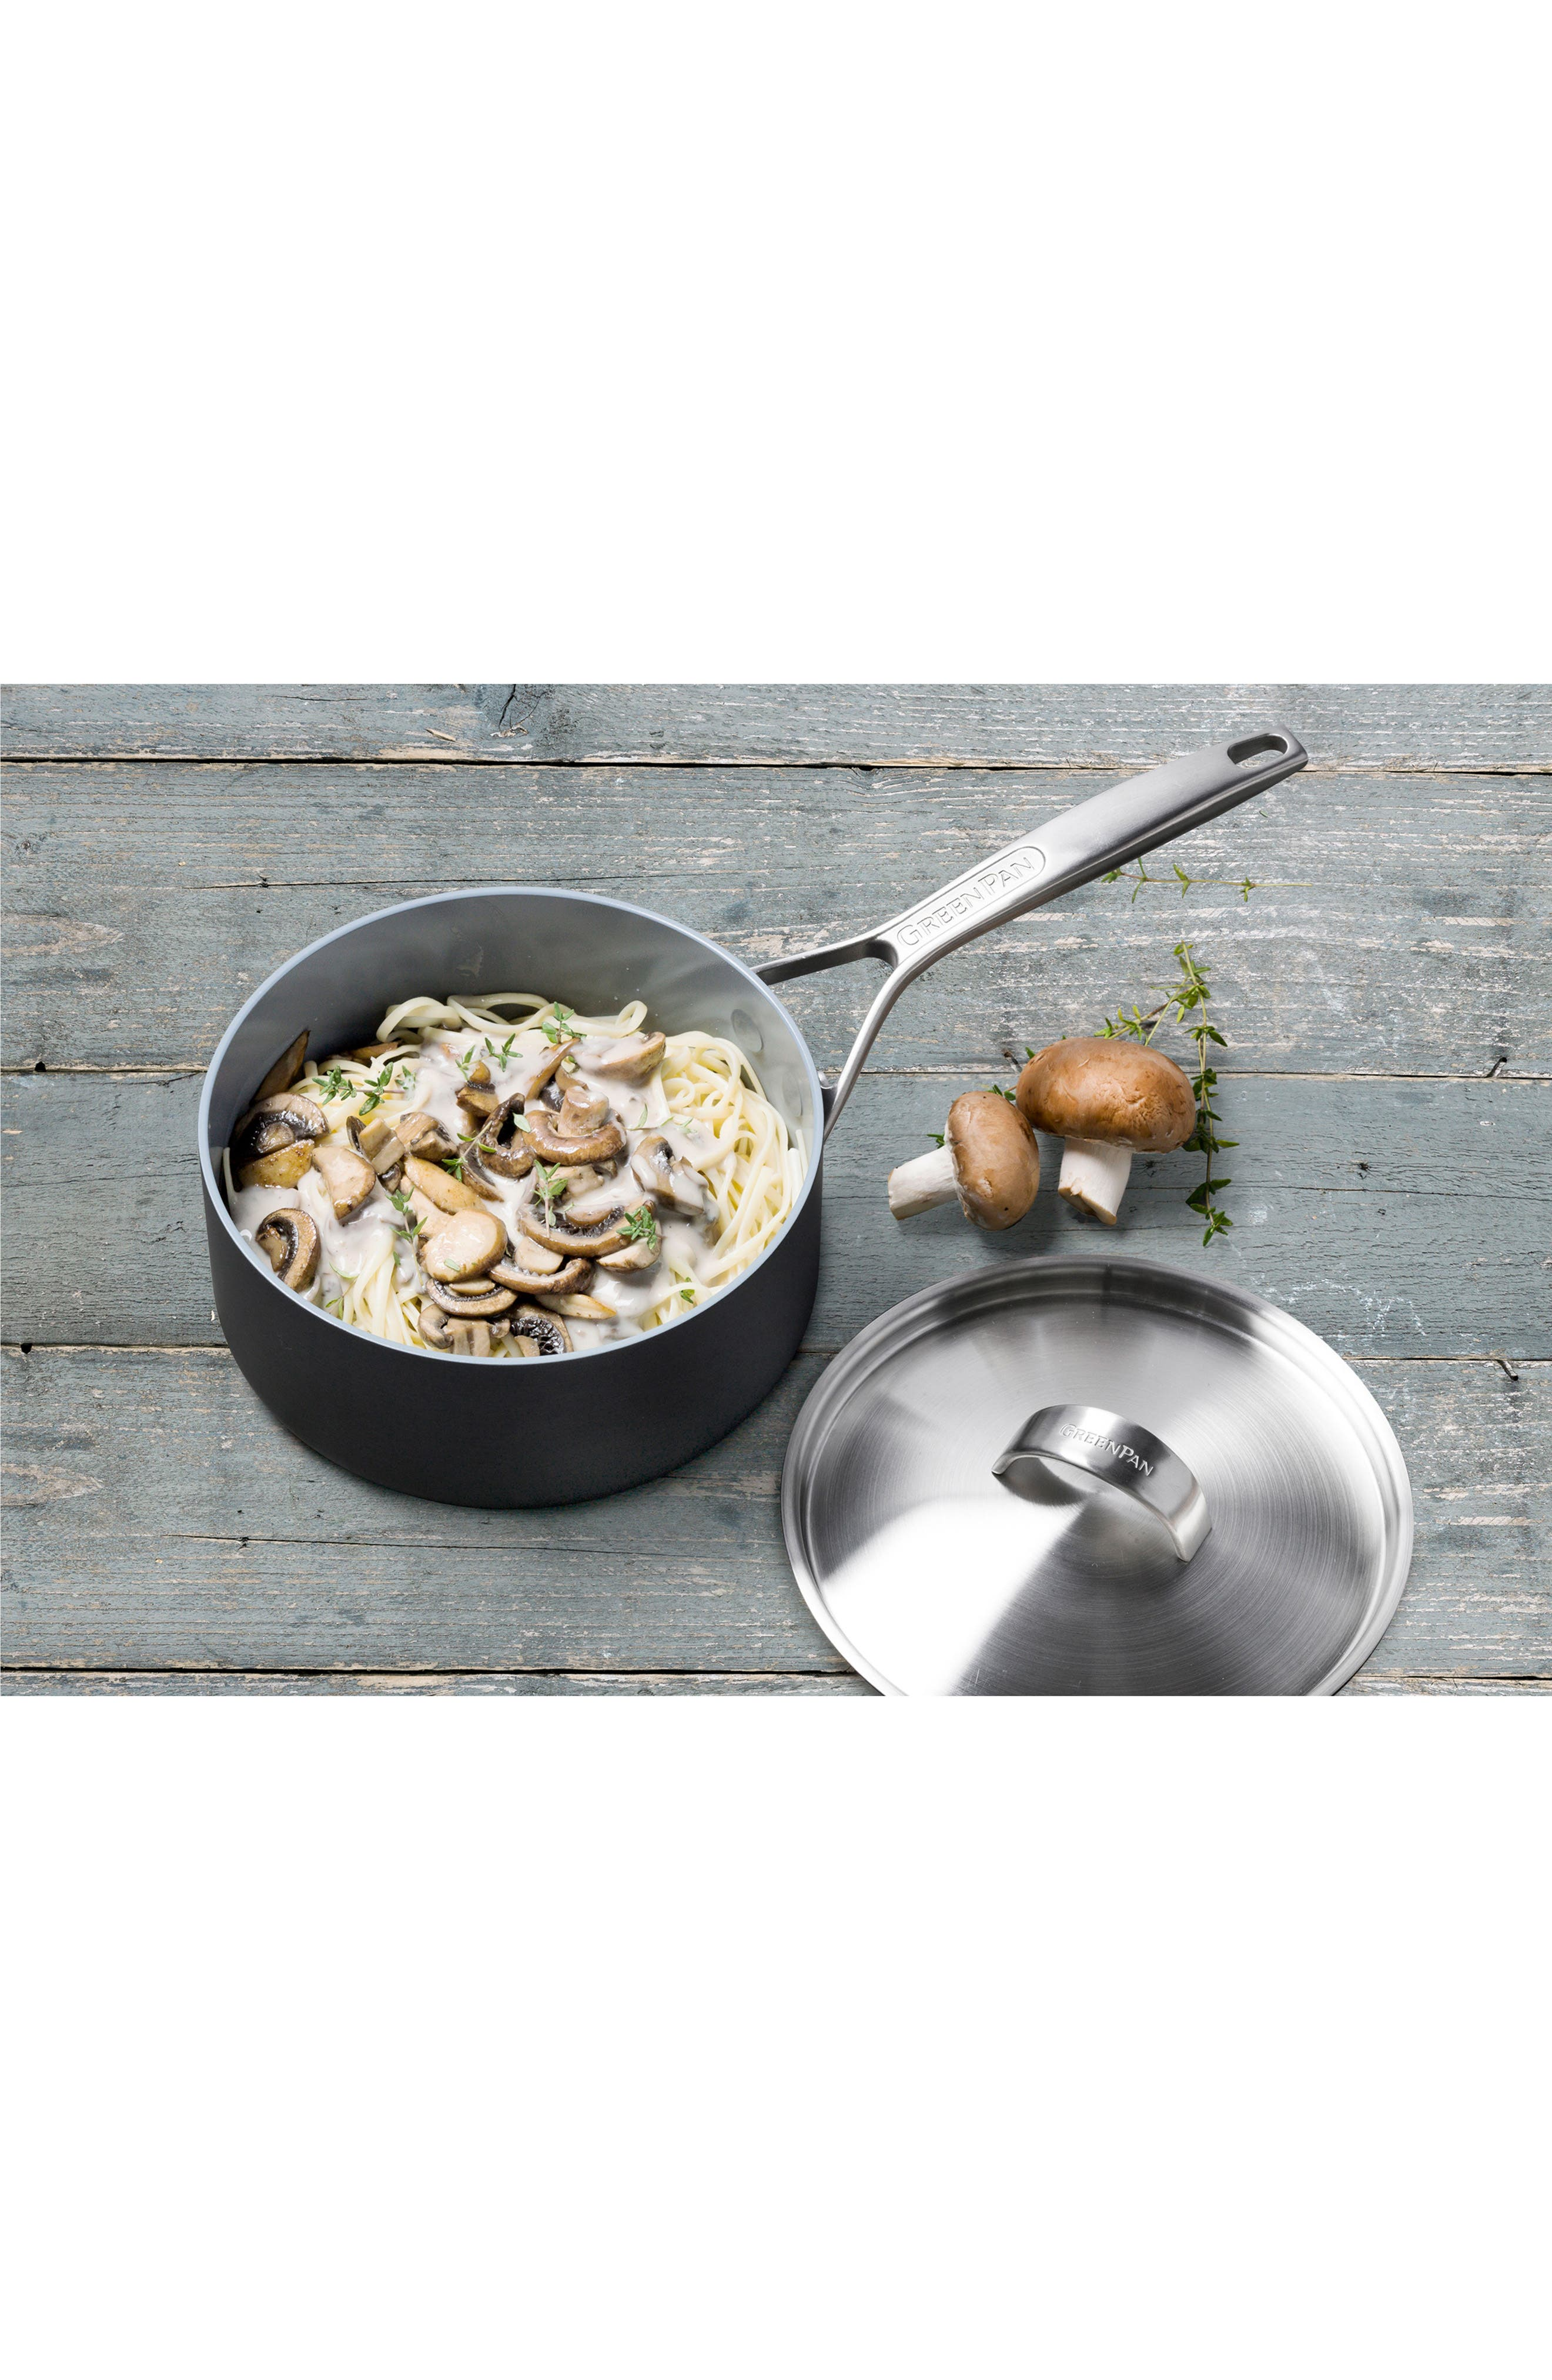 Paris 3-Quart Multilayer Stainless Steel Ceramic Nonstick Saucepan with Lid,                             Alternate thumbnail 3, color,                             GREY